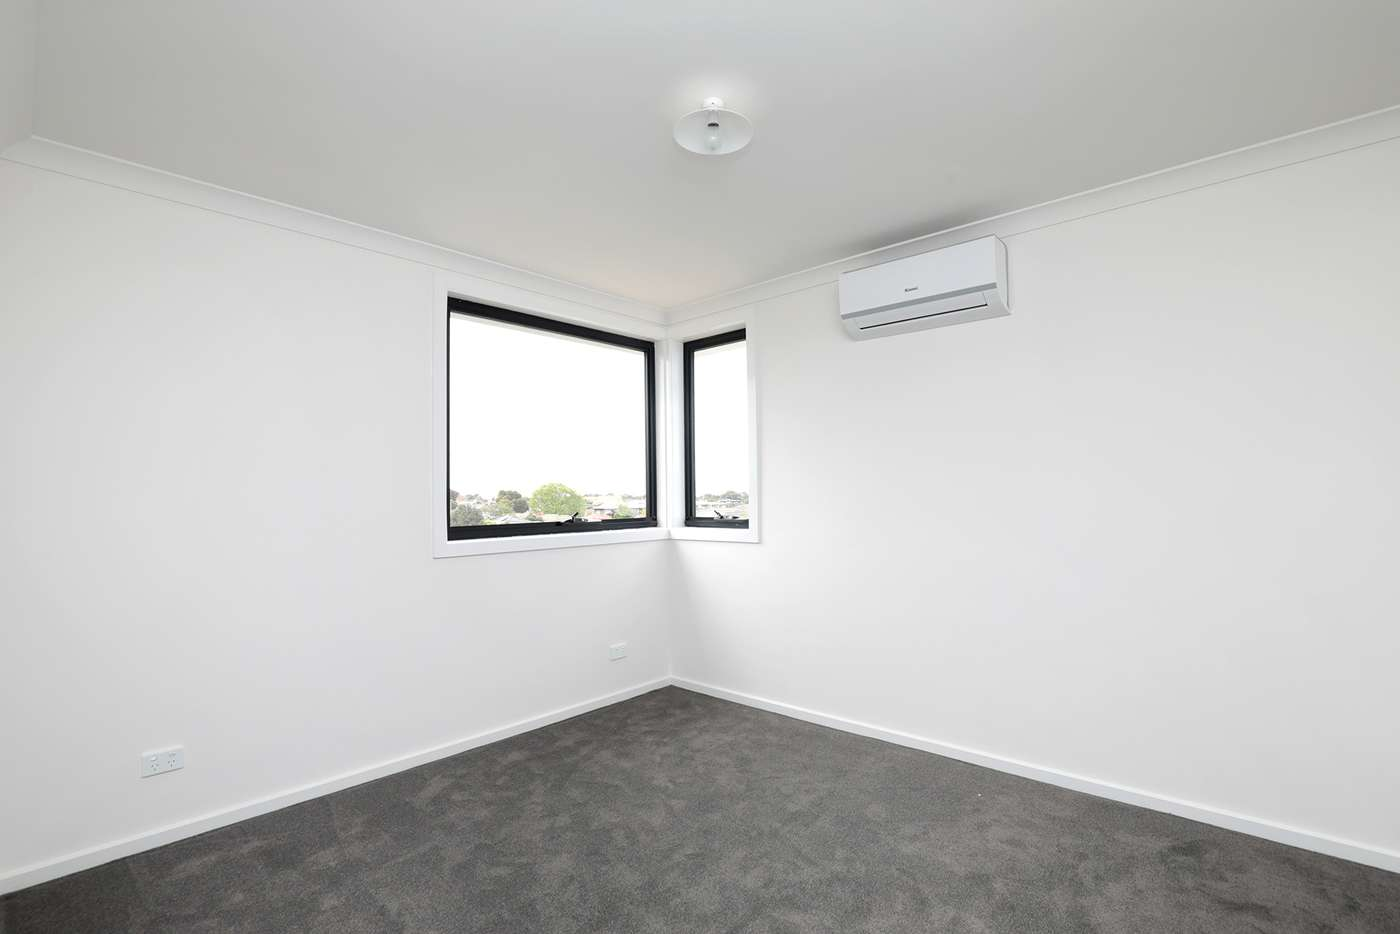 Sixth view of Homely townhouse listing, 9/89 Chapman Avenue, Glenroy VIC 3046